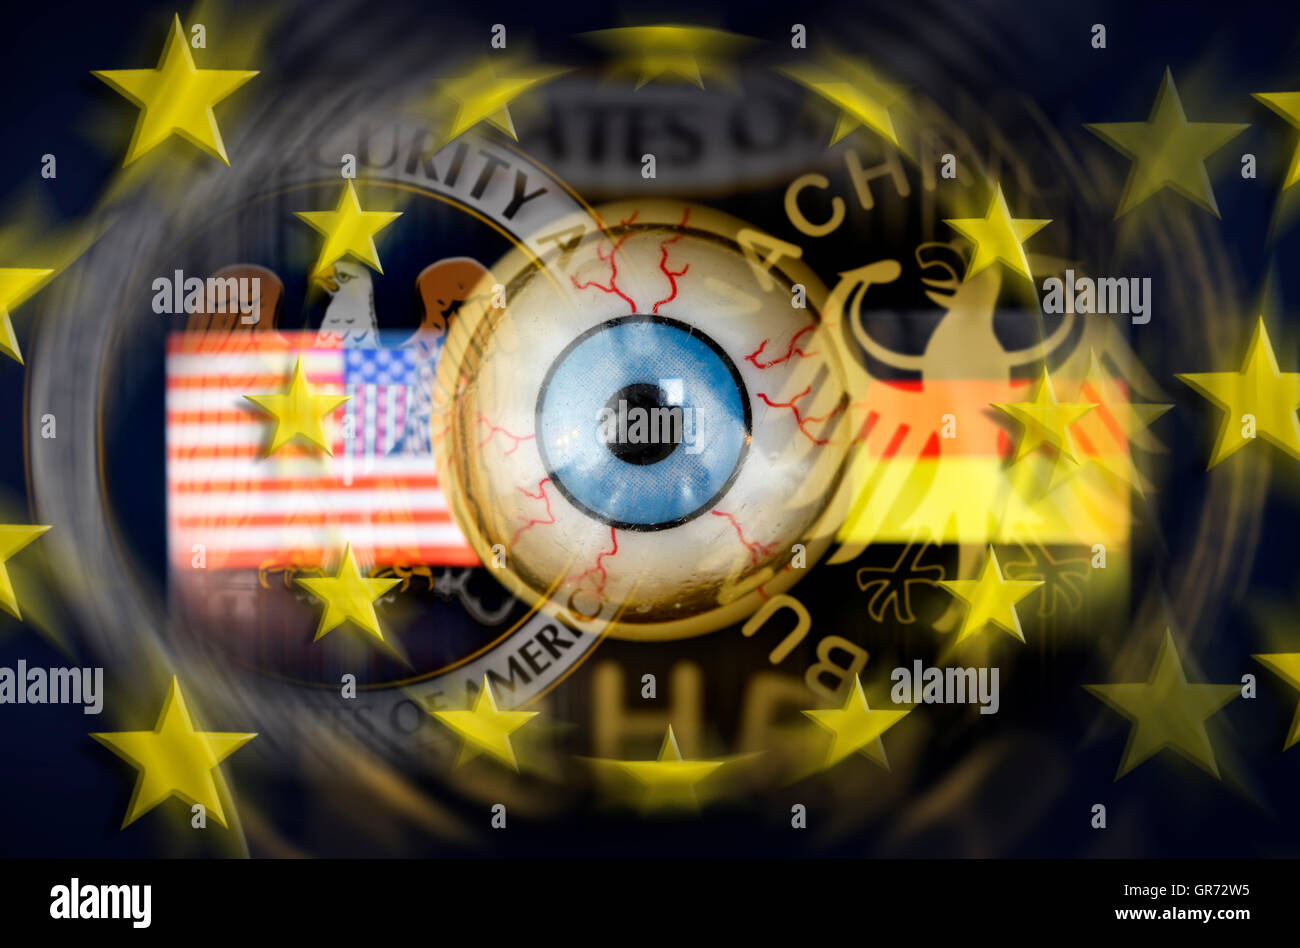 Eye And Emblems Of Nsa And German Bnd, Espionage Scandal - Stock Image